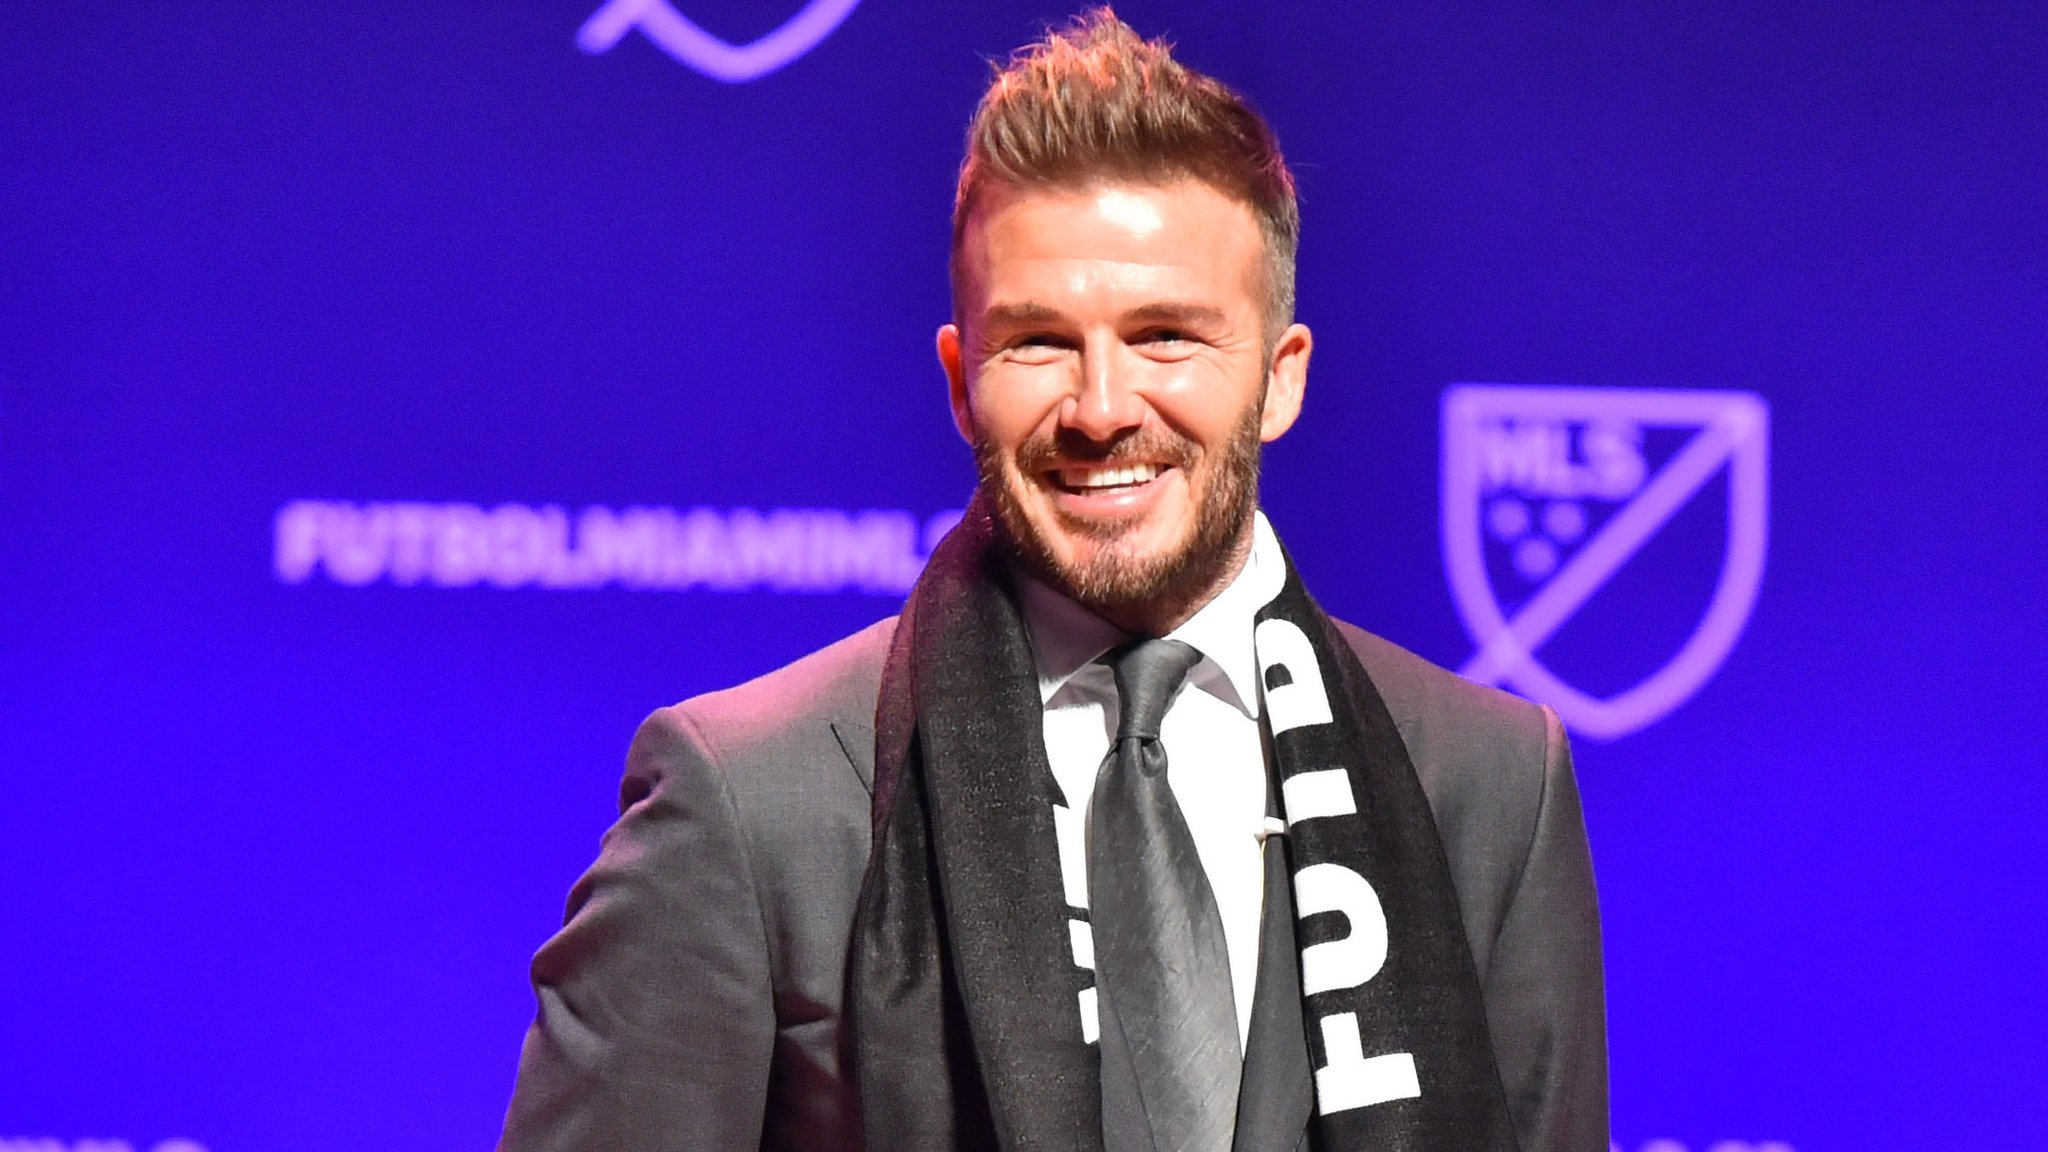 'A true football icon' - Uefa to honour Beckham with award